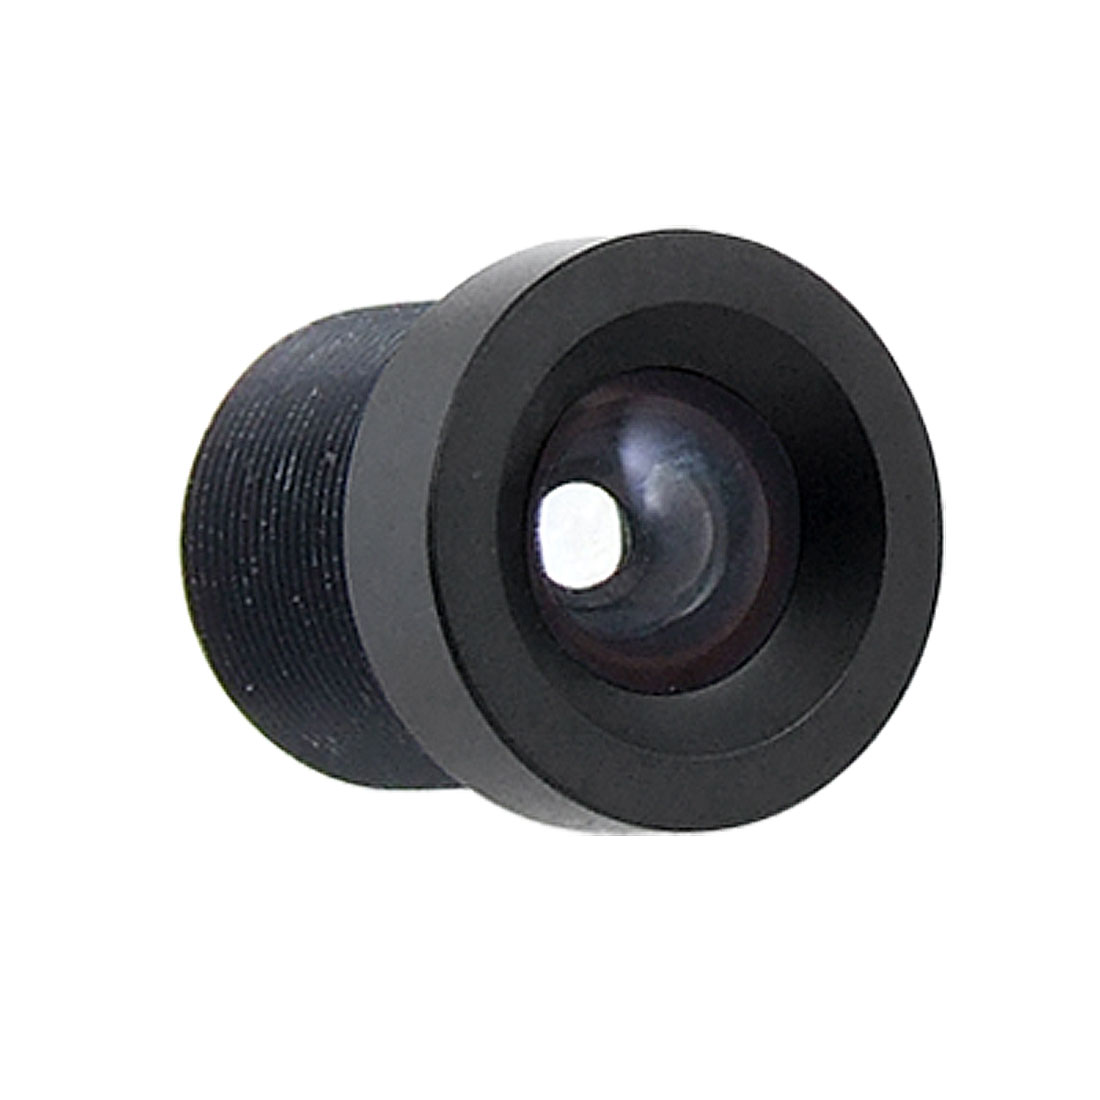 "3.6mm 92 Degree Wide Angle CCTV Camera IR Board Lens Focal for 1/3"" CCD"